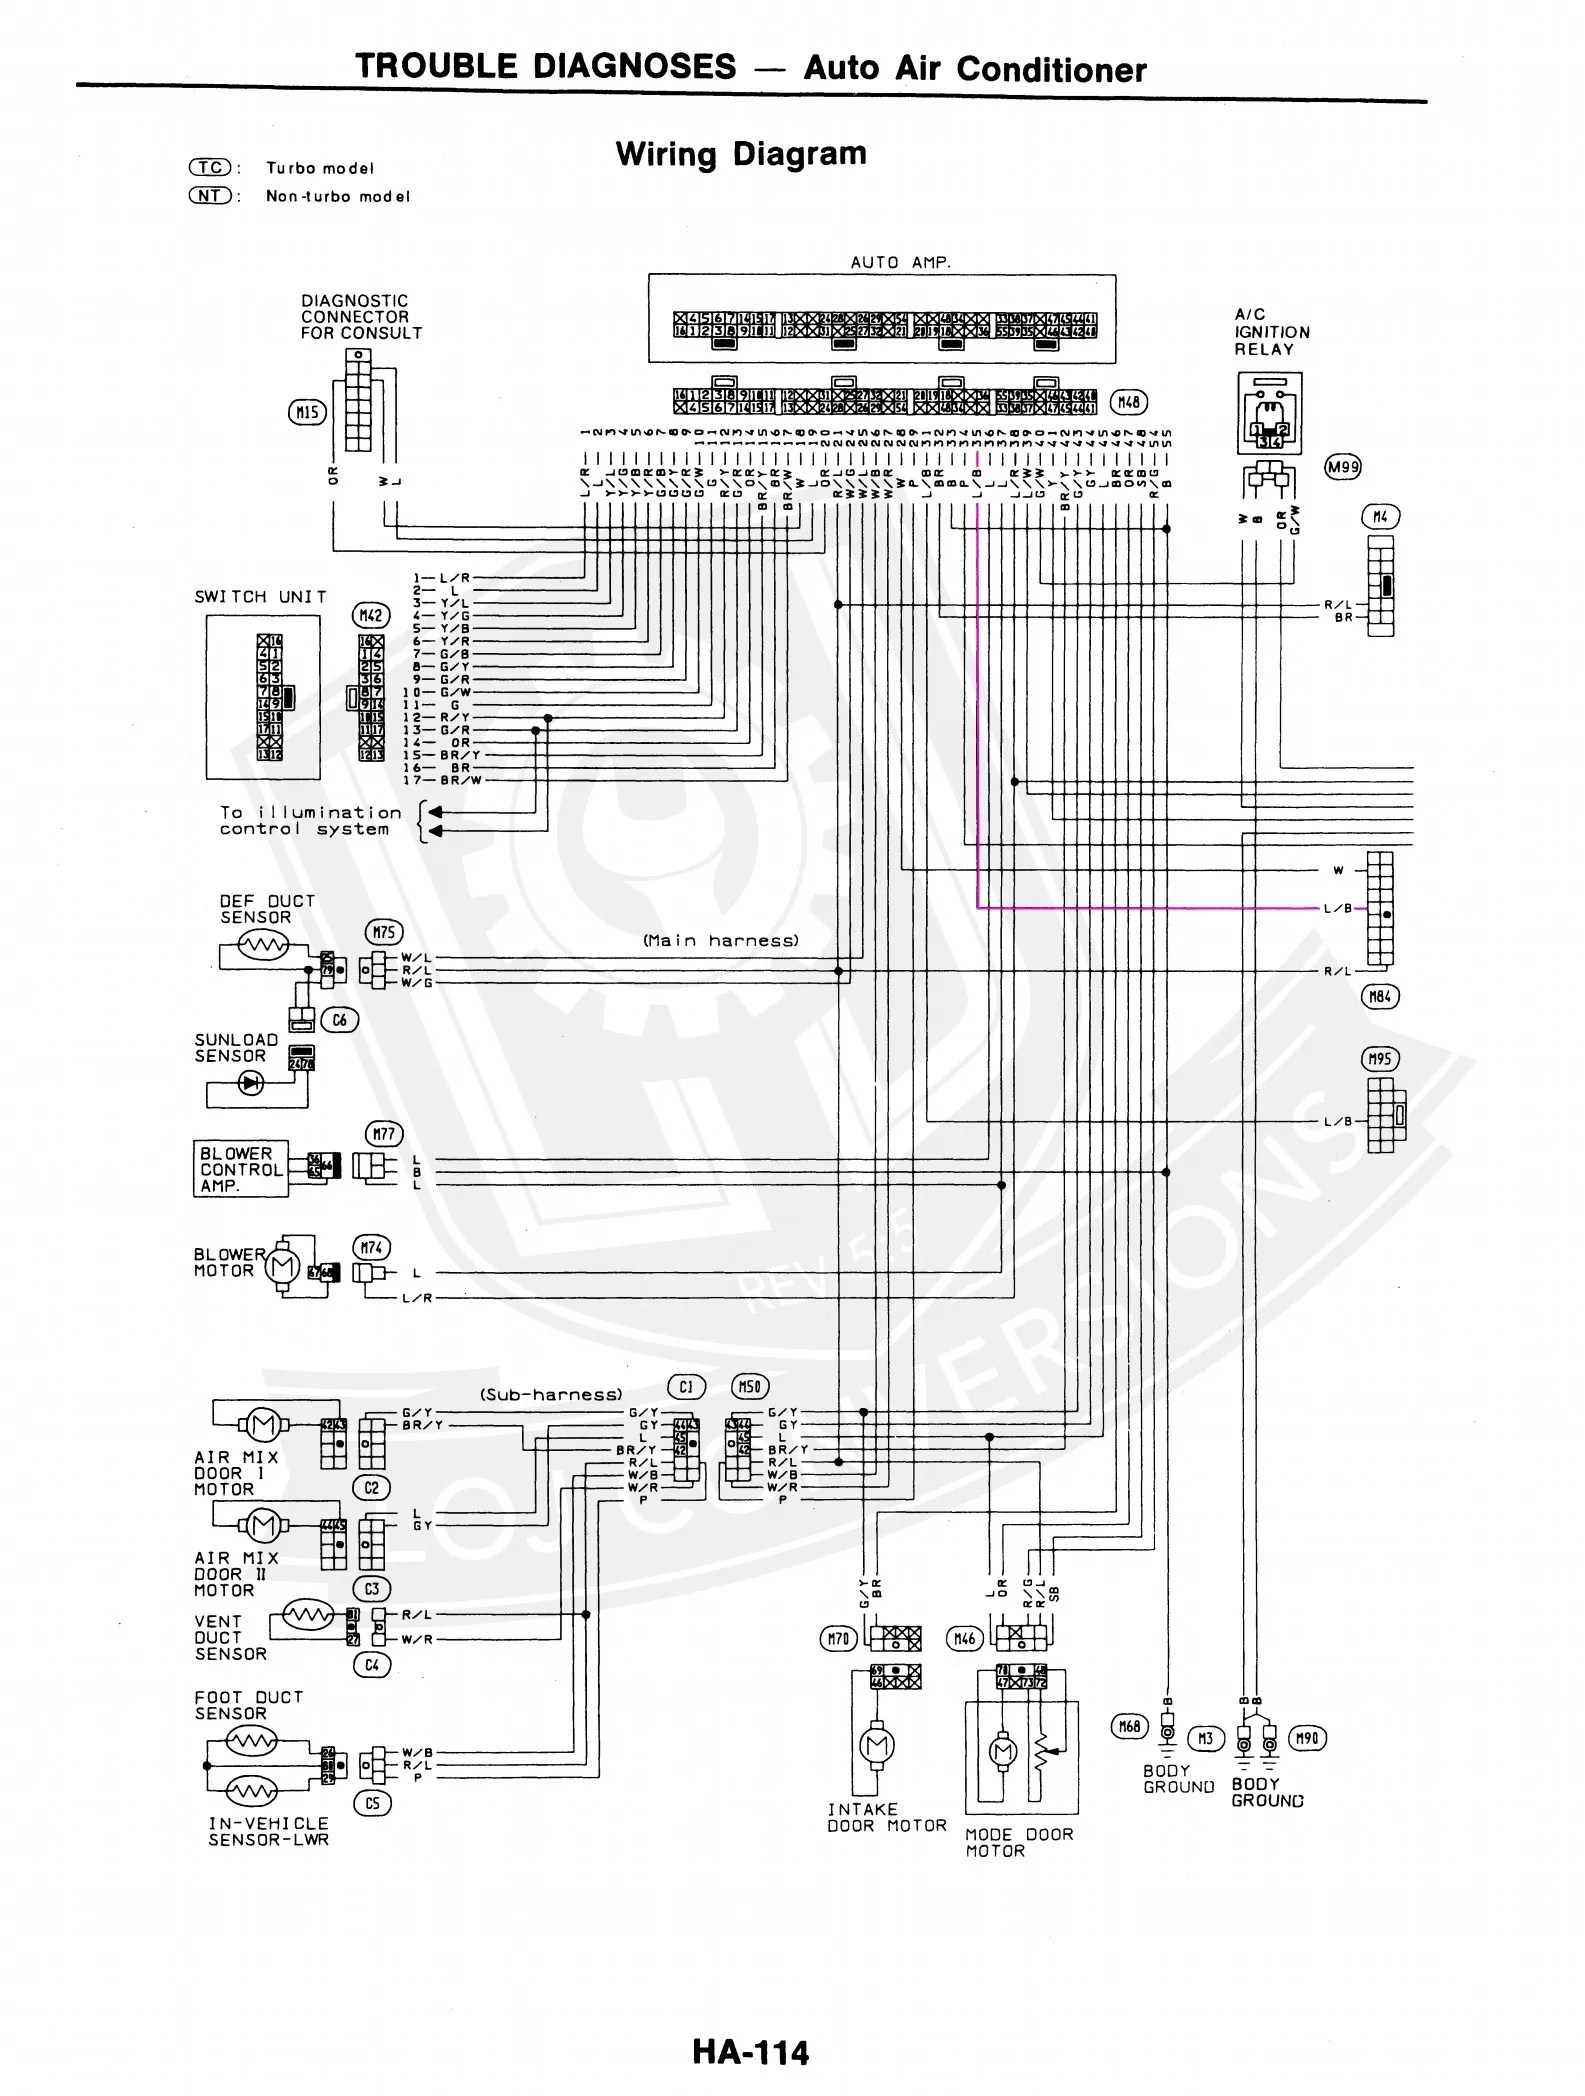 hight resolution of 300zx turbo wiring diagram wiring diagram nissan datsun 300zx turbo exhaust diagram category exhaust diagram